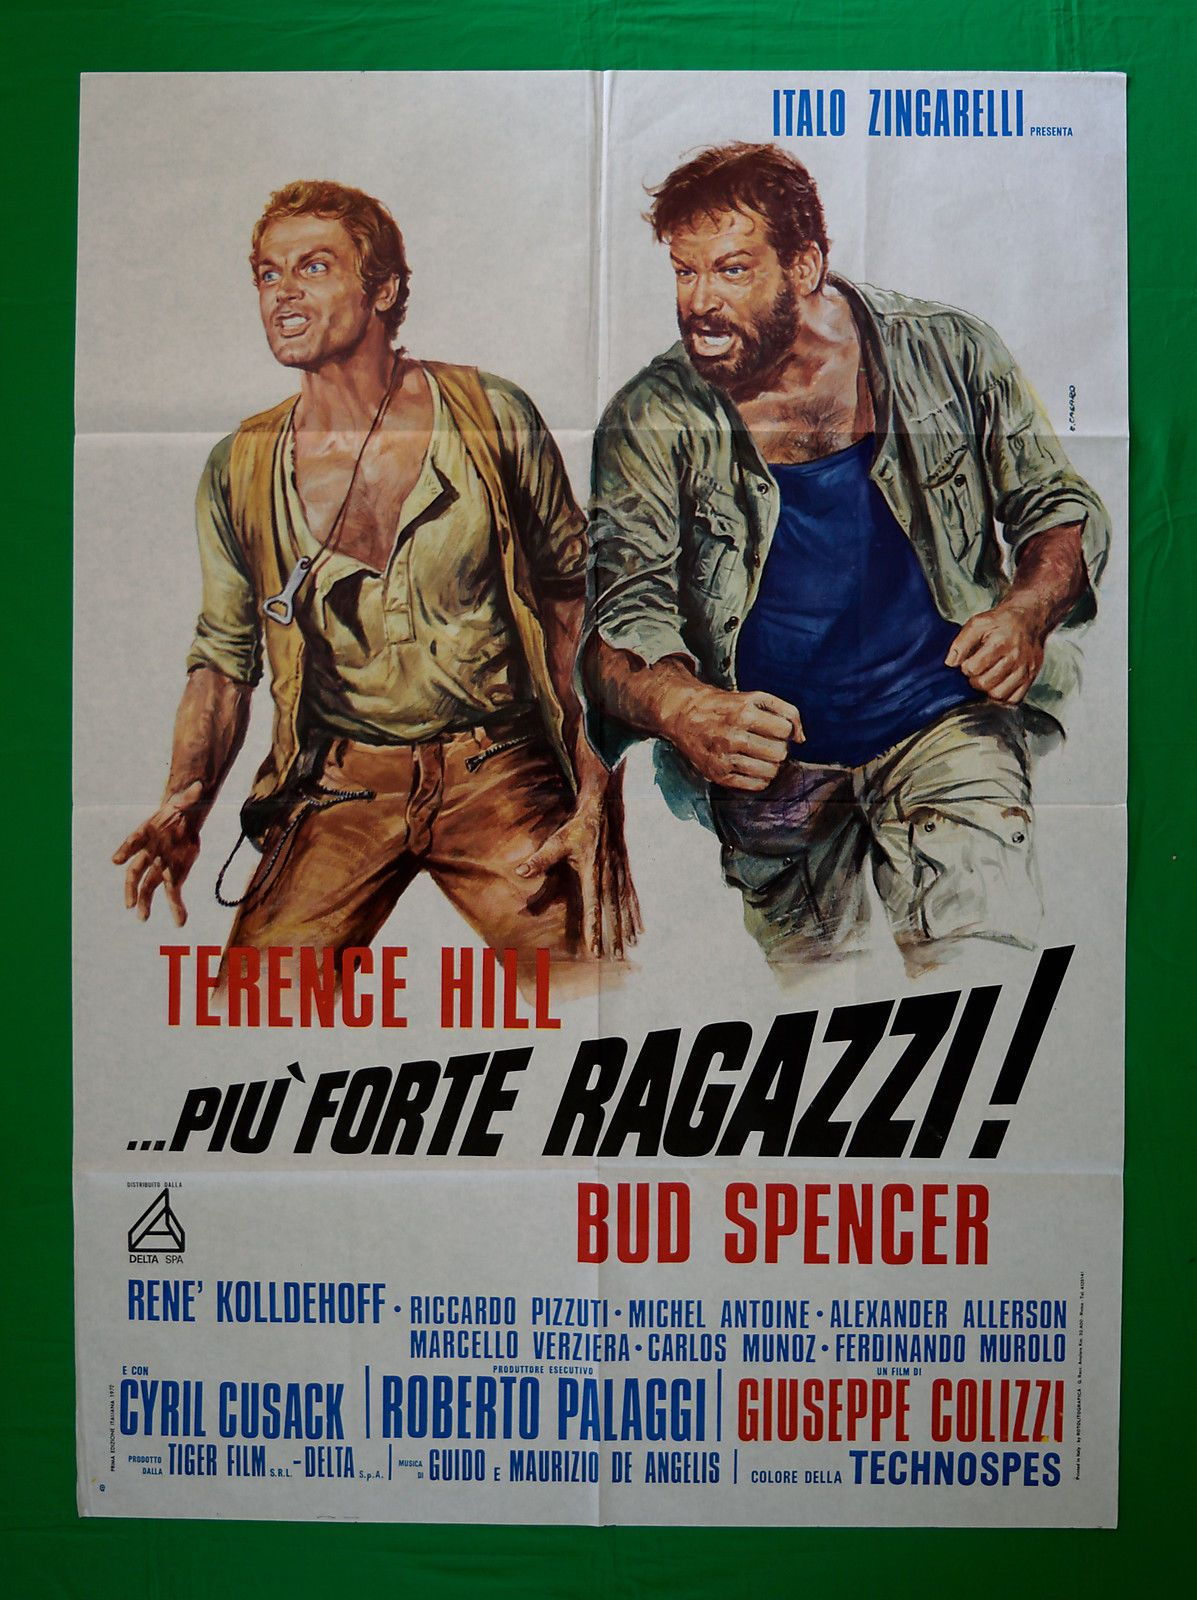 Filmes Bud Spencer E Terence Hill Dublado throughout pinflorian berg on bud spencer & terence hill filmplakate